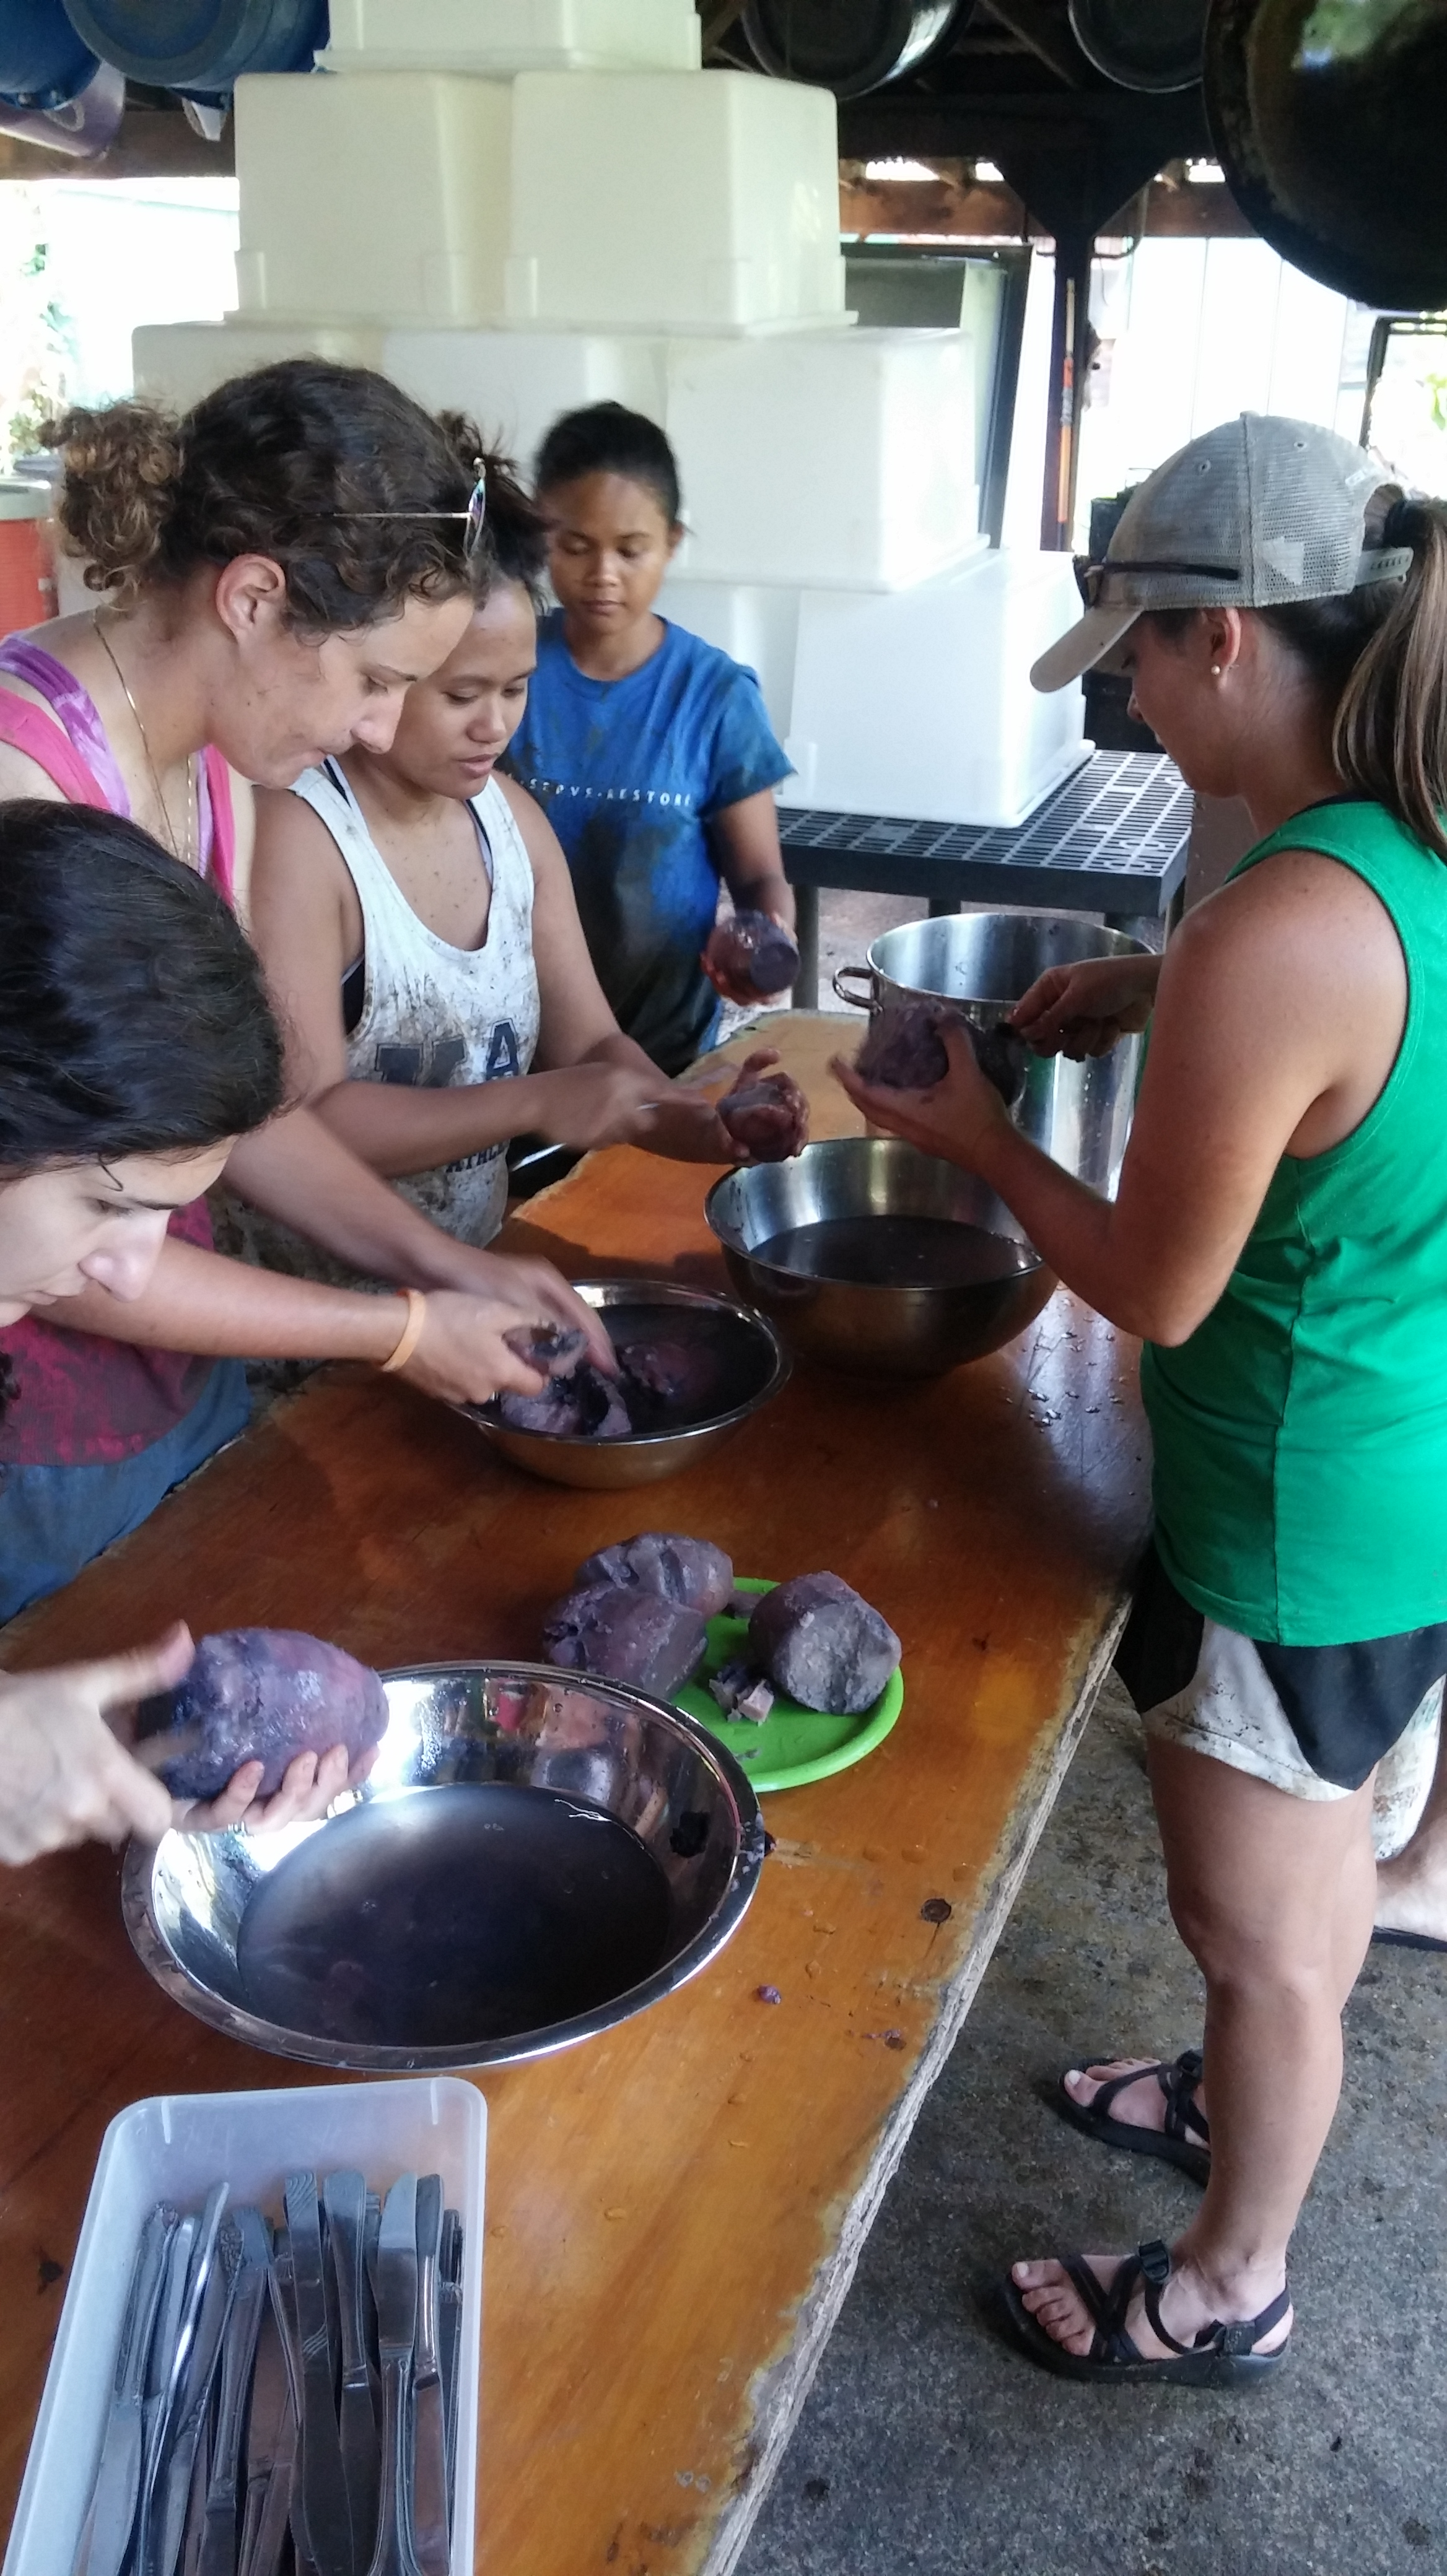 Learning how to cook the kalo. Just like prepping mashed potatoes.